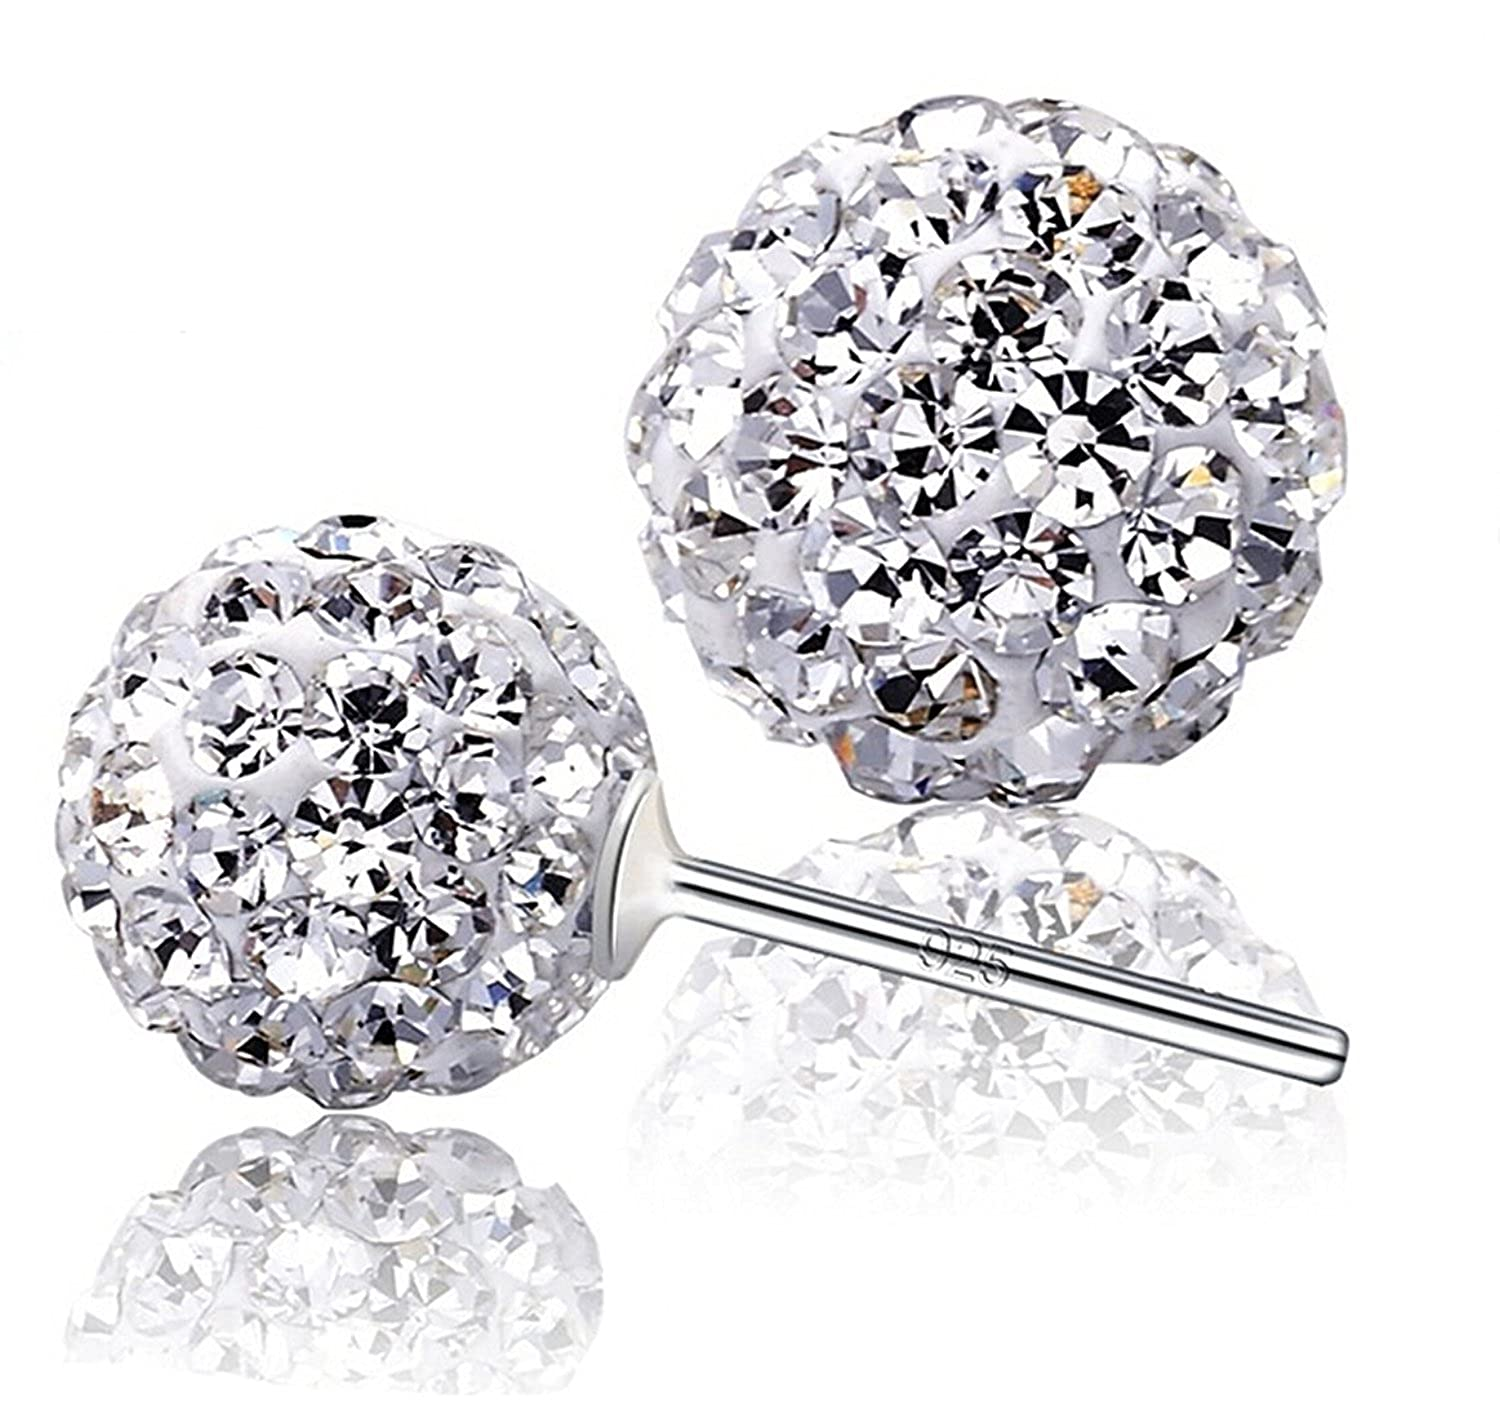 0bc3e7709f899 925 Sterling Silver Crystals from Swarovski White Round Disco Ball Stud  Earrings 8mm for Women and Girls